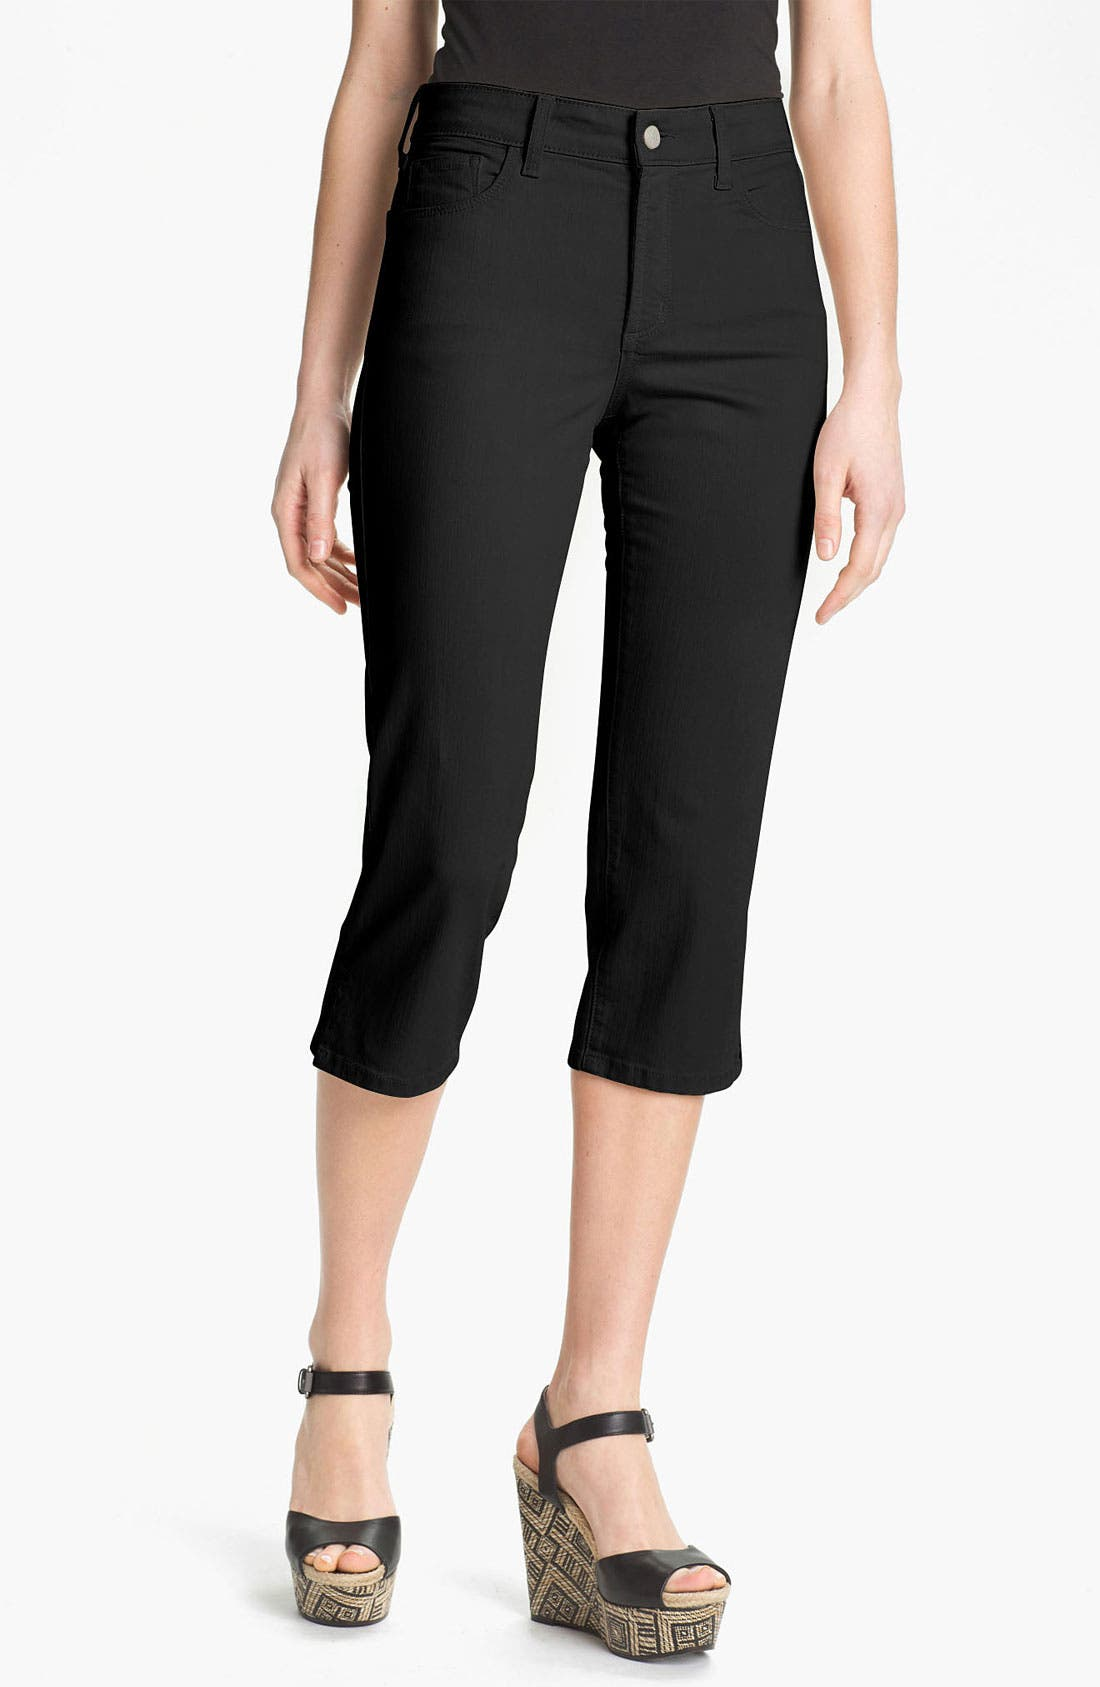 Alternate Image 1 Selected - NYDJ 'Nanette' Crop Stretch Jeans (Petite)